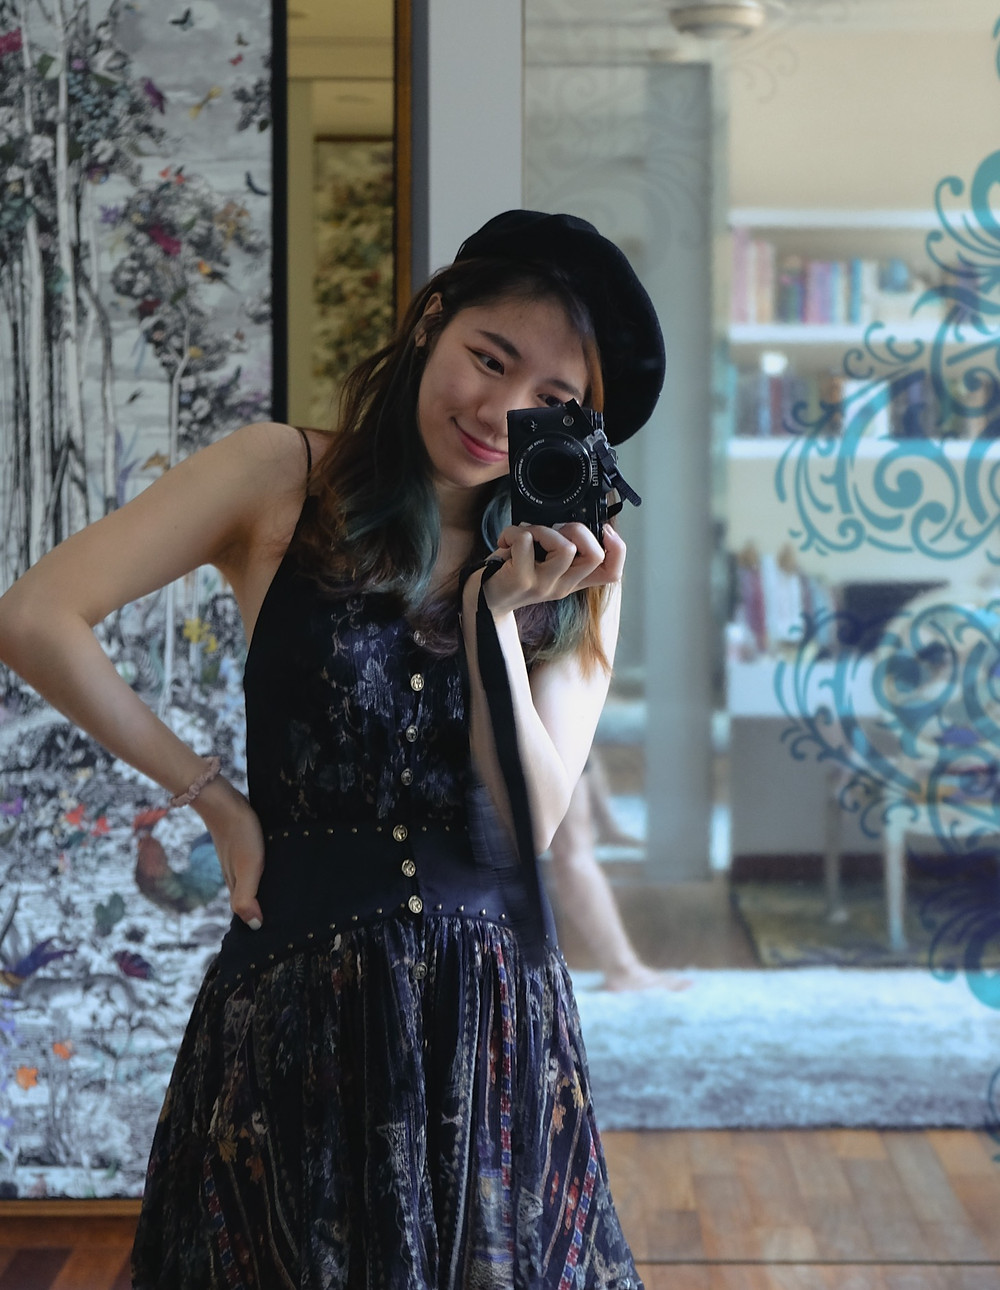 Black beret and Camilla black dress styled by RollingBear Travels.